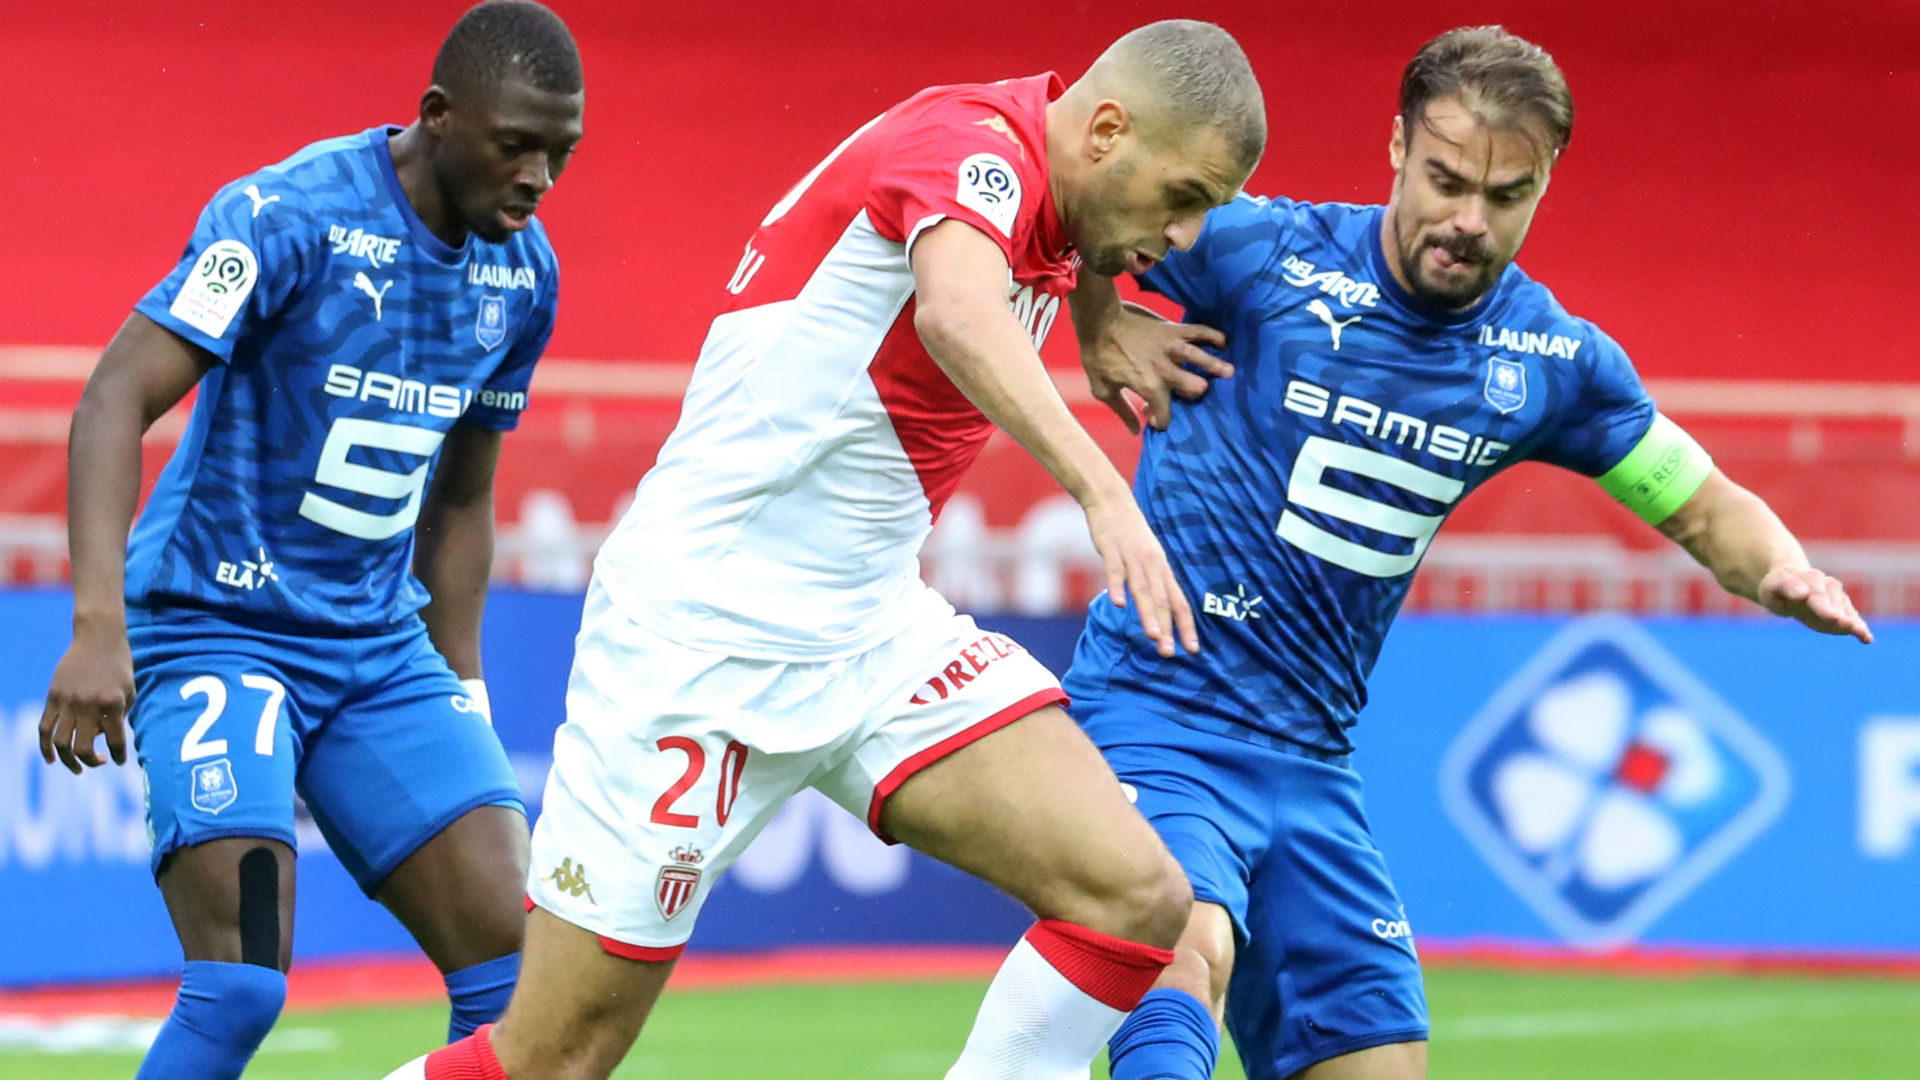 Monaco's Slimani to miss PSG and Toulouse games